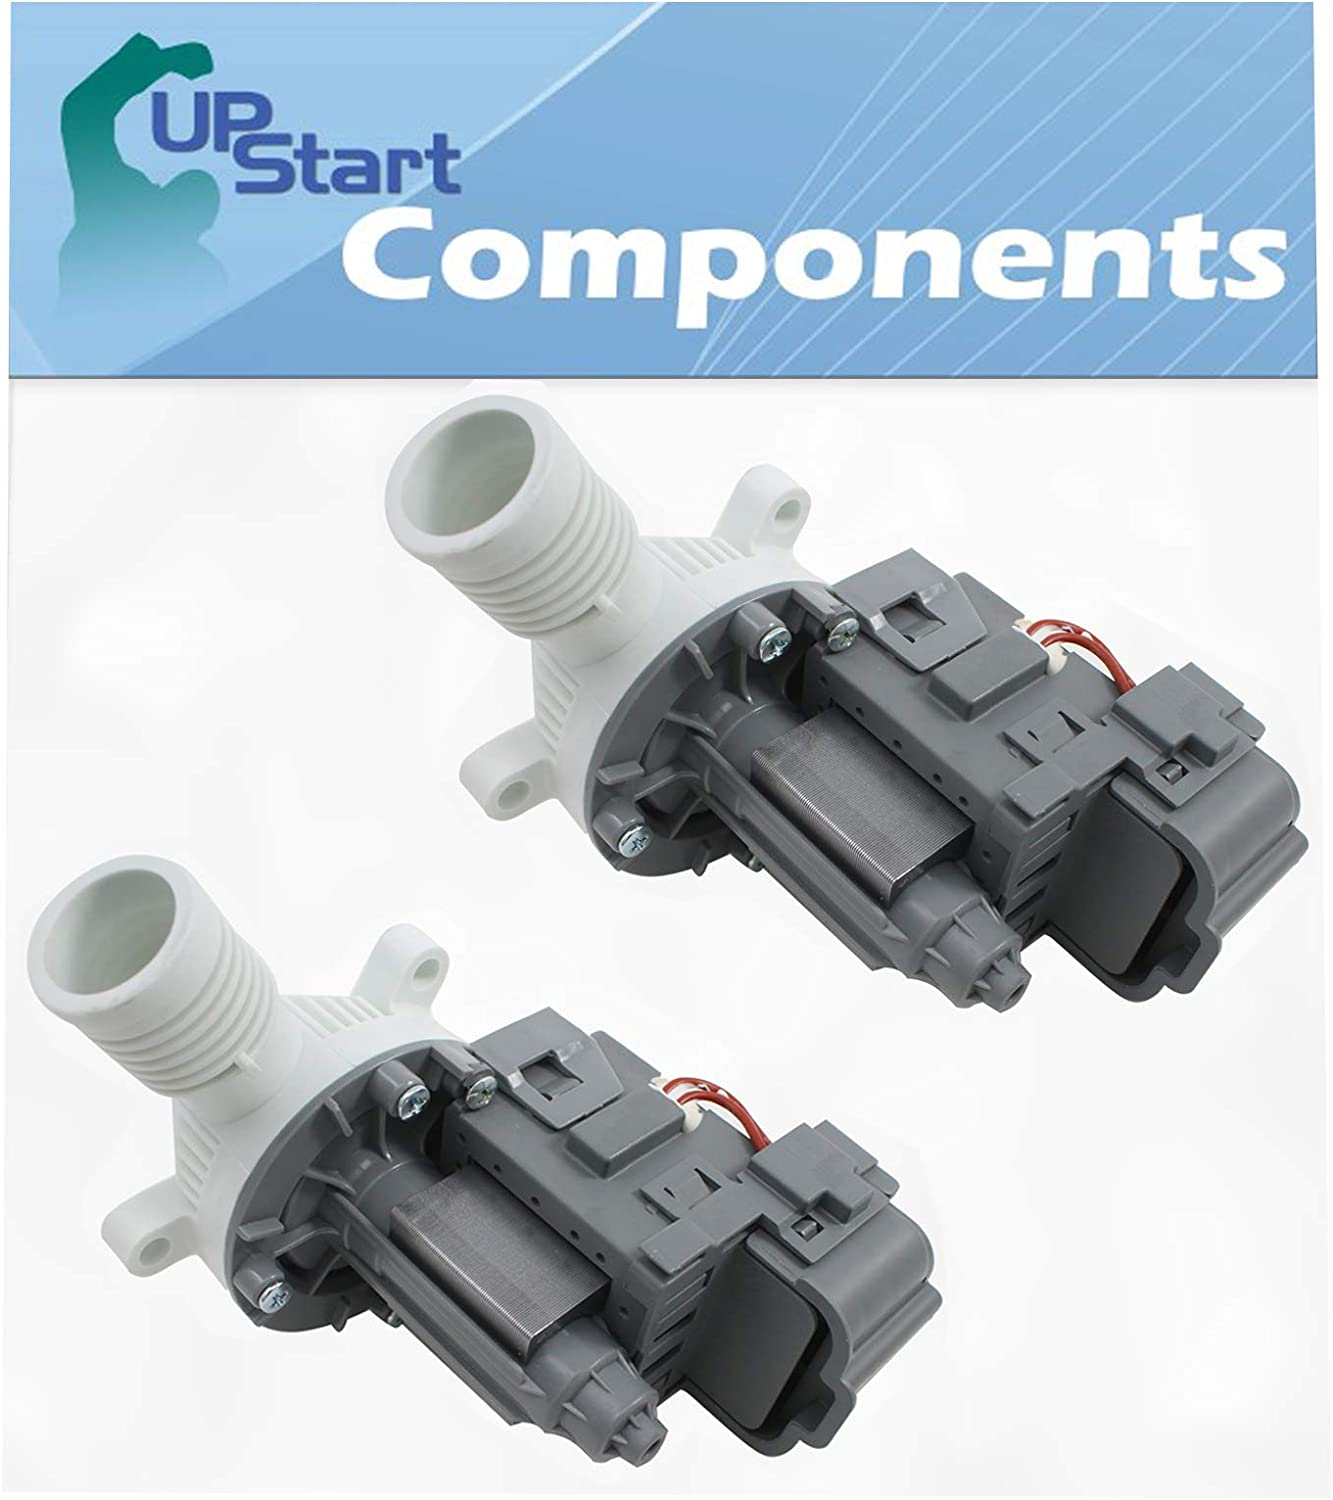 2-Pack W10276397 Washer Drain Pump Replacement for Maytag MAT20PRAWW0 - Compatible with WPW10276397 Washing Machine Water Pump